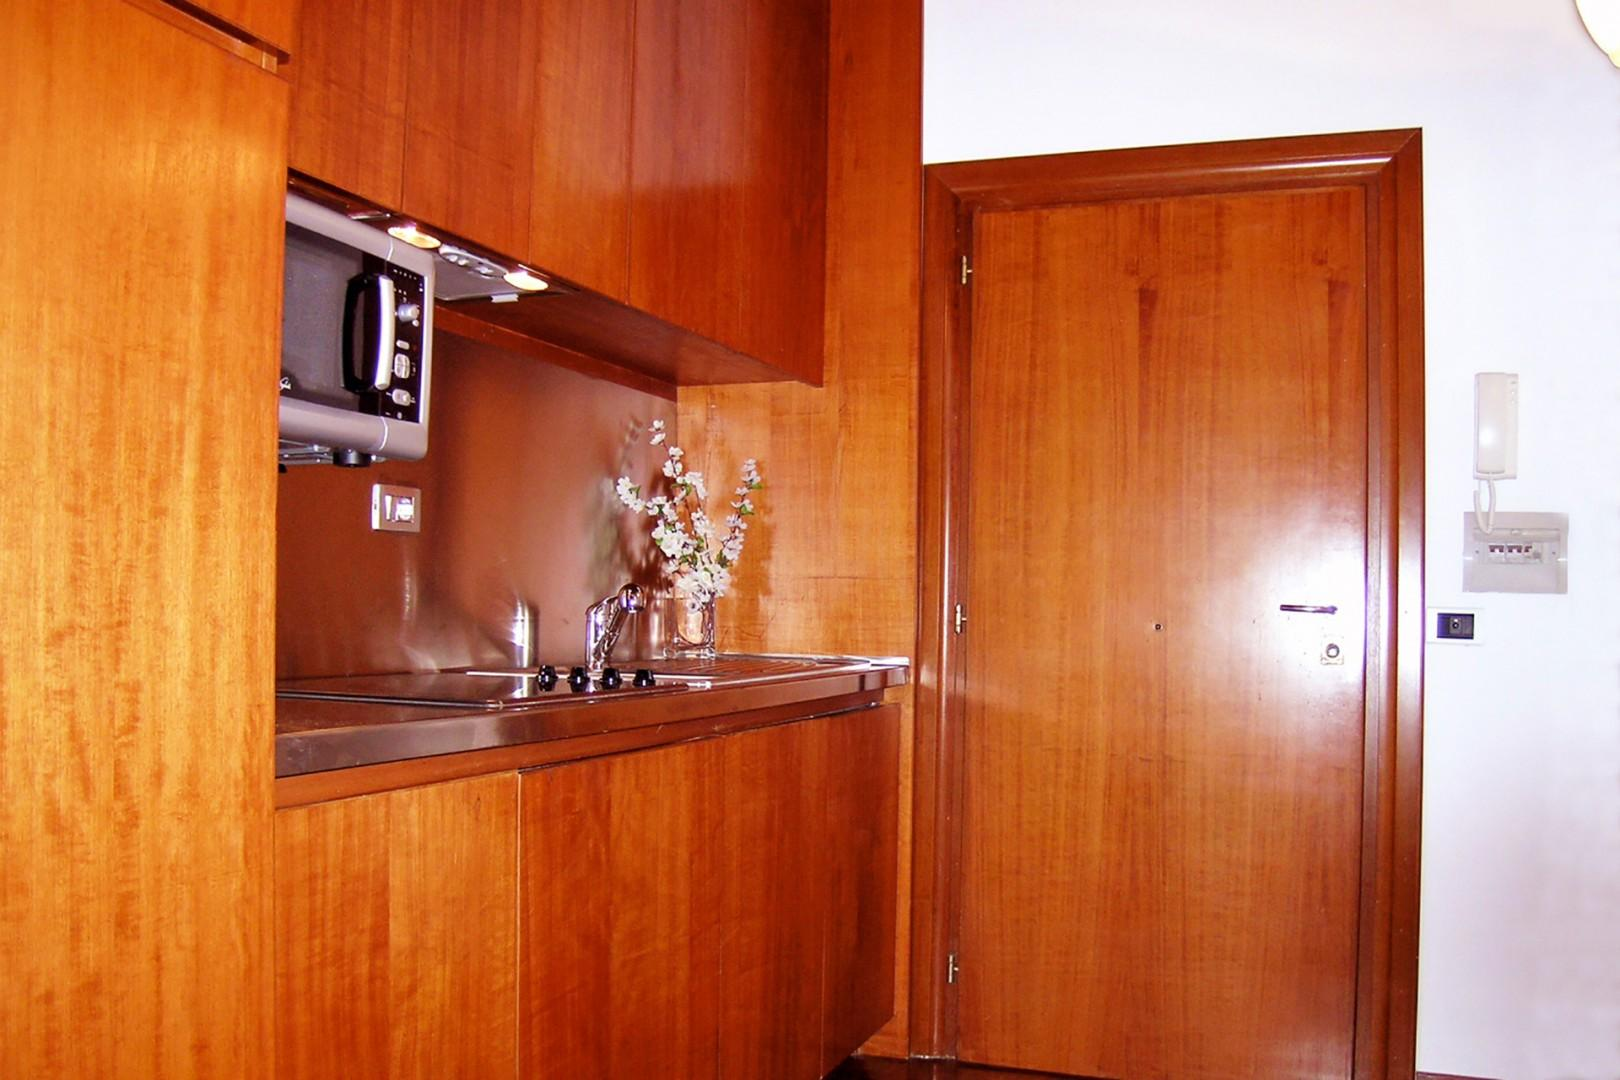 Enter the apartment front door and the kitchenette is immediately to your right.